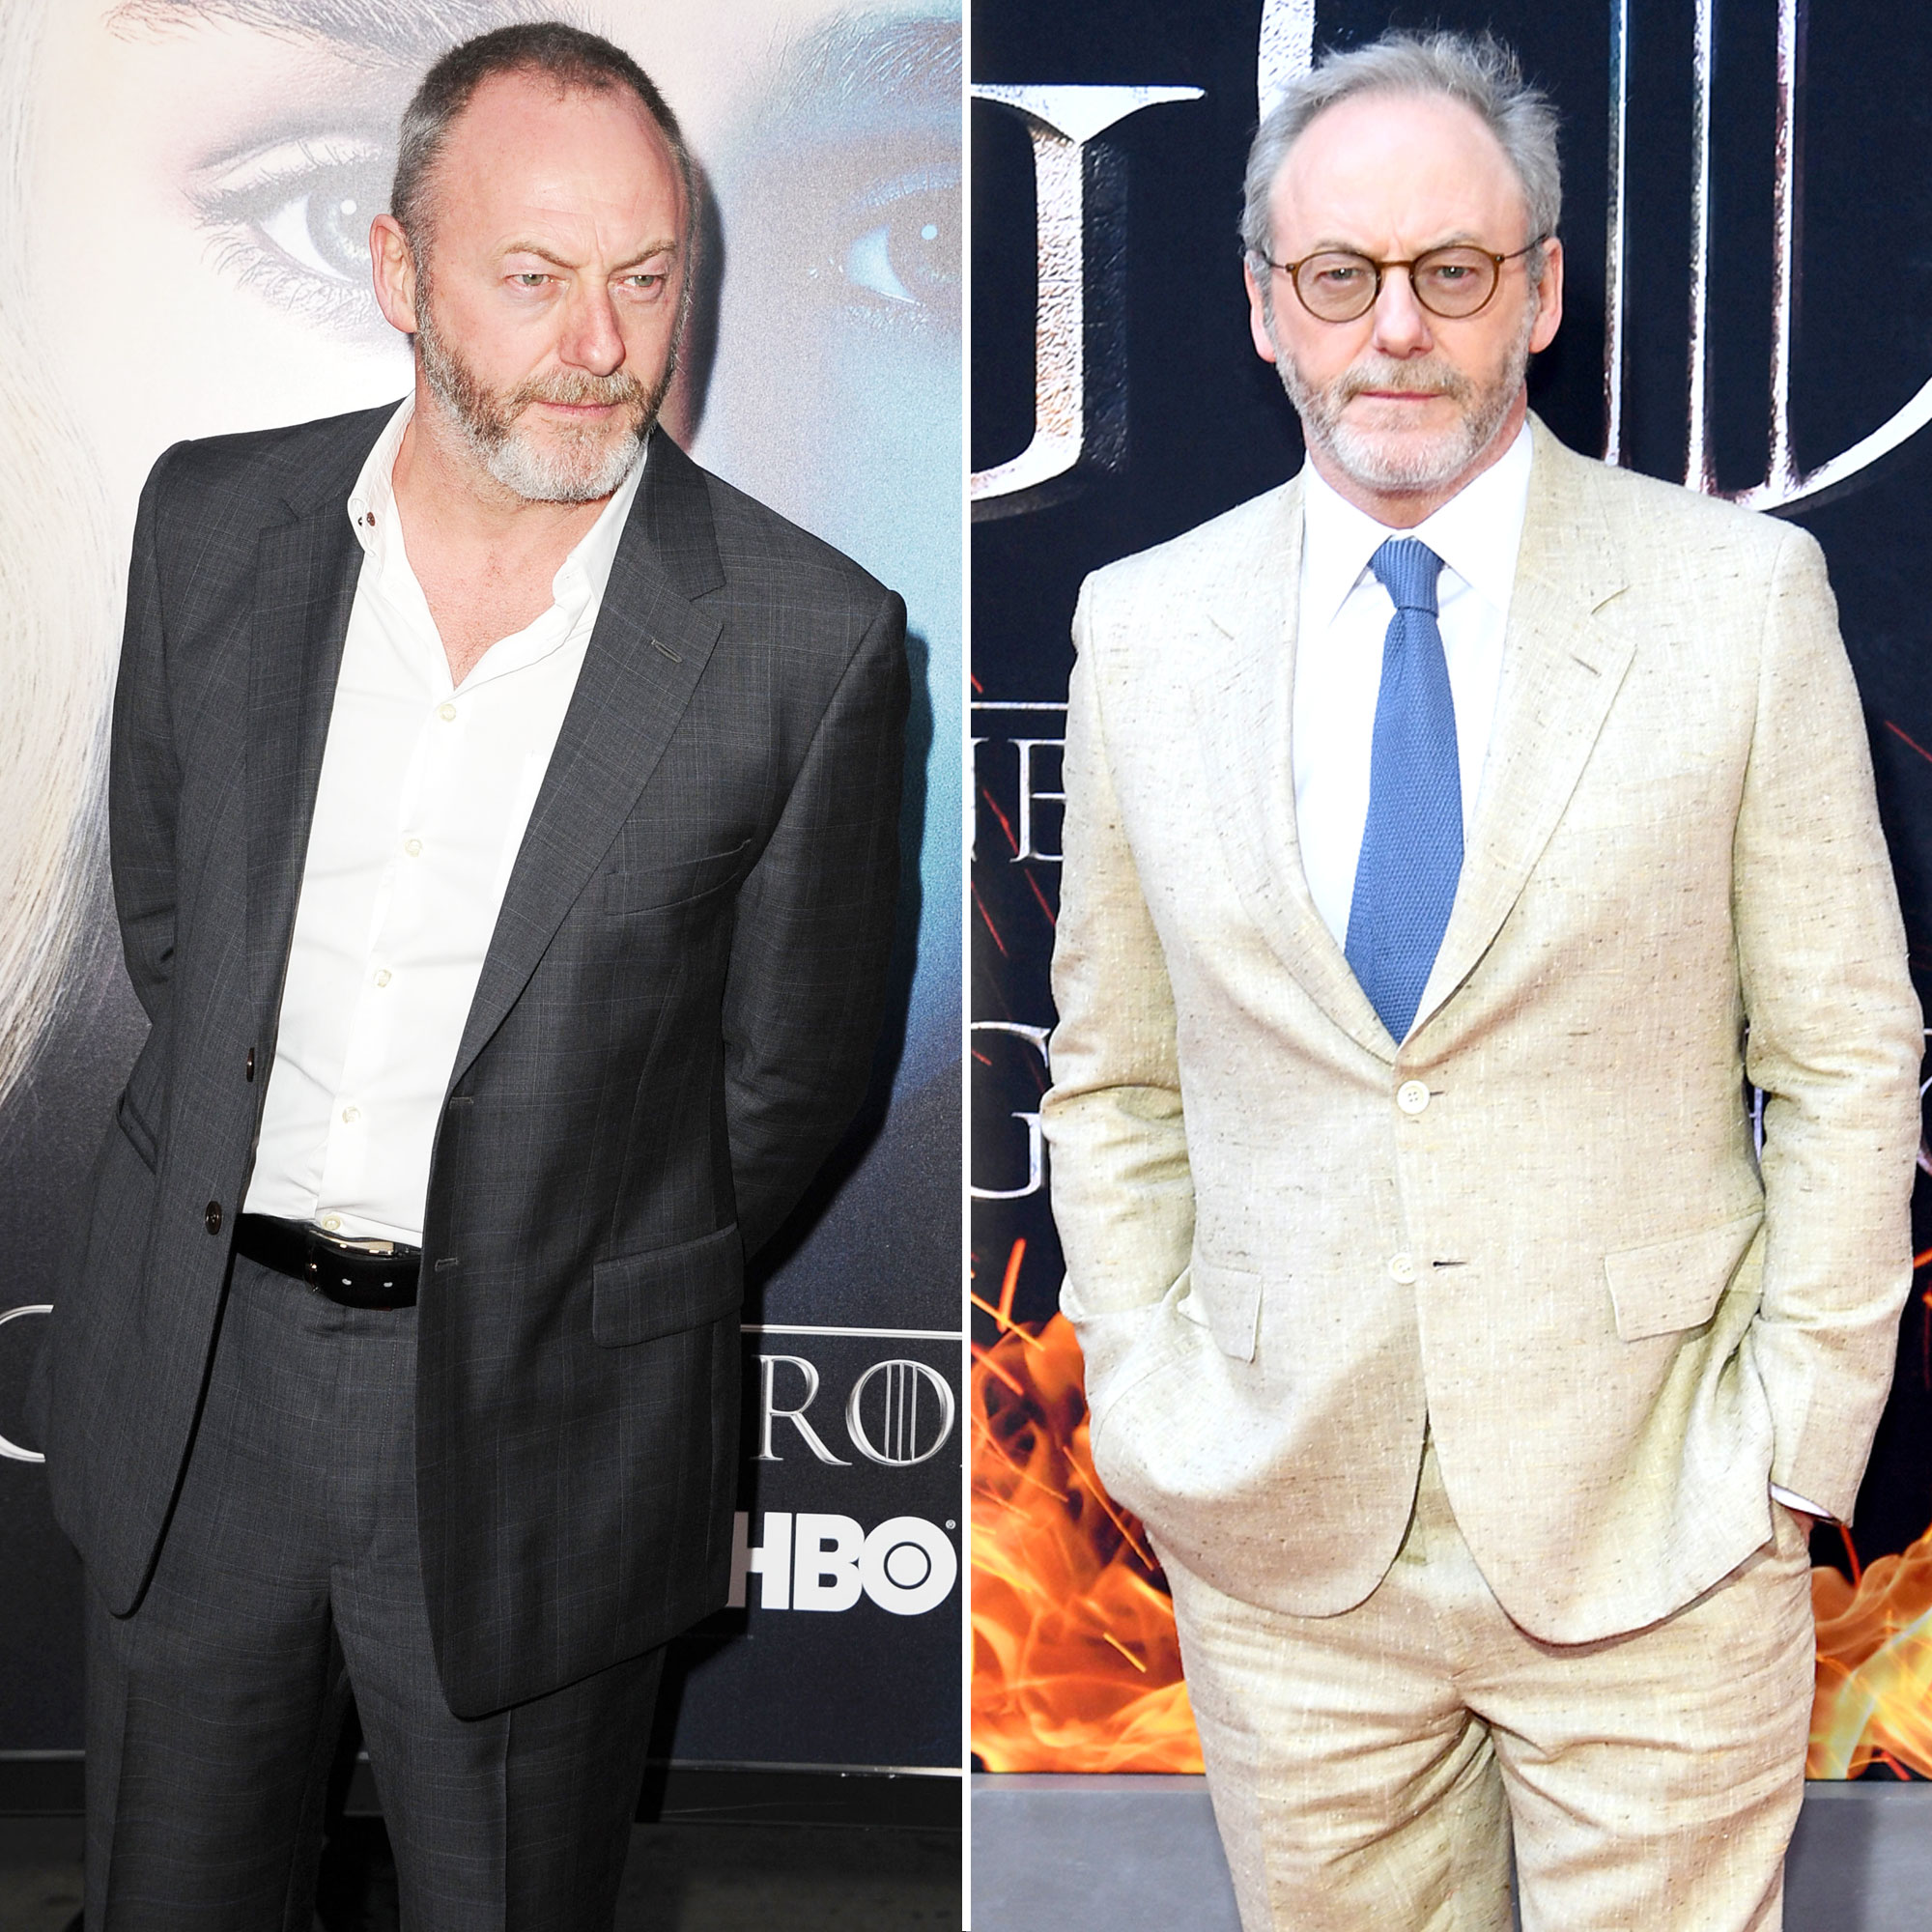 Liam Cunningham'Game of Thrones' Stars: From the First 'GoT' Red Carpet Premiere to the Last - There's something about the Irish actor that fans have loved since day one. Whether Ser Davos makes it to the very end remains to be seen, but at least Cunningham has a few projects planned, such as TV mini-series The Hot Zone .